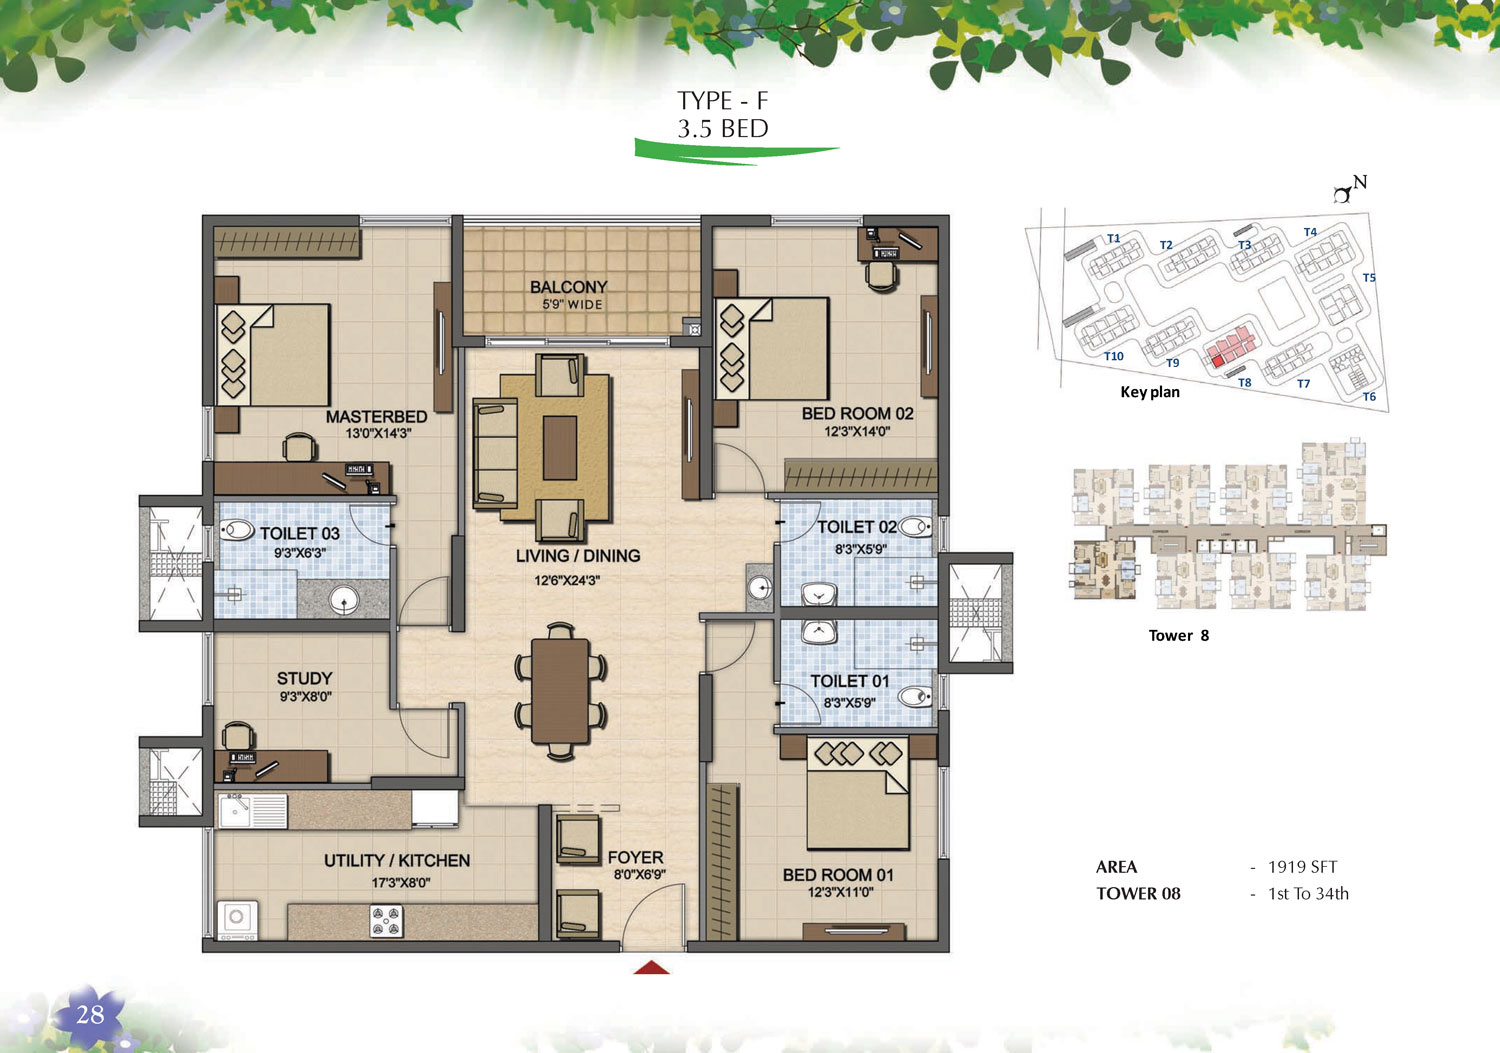 Type F - 3.5 Bed - 1919 Sq Ft